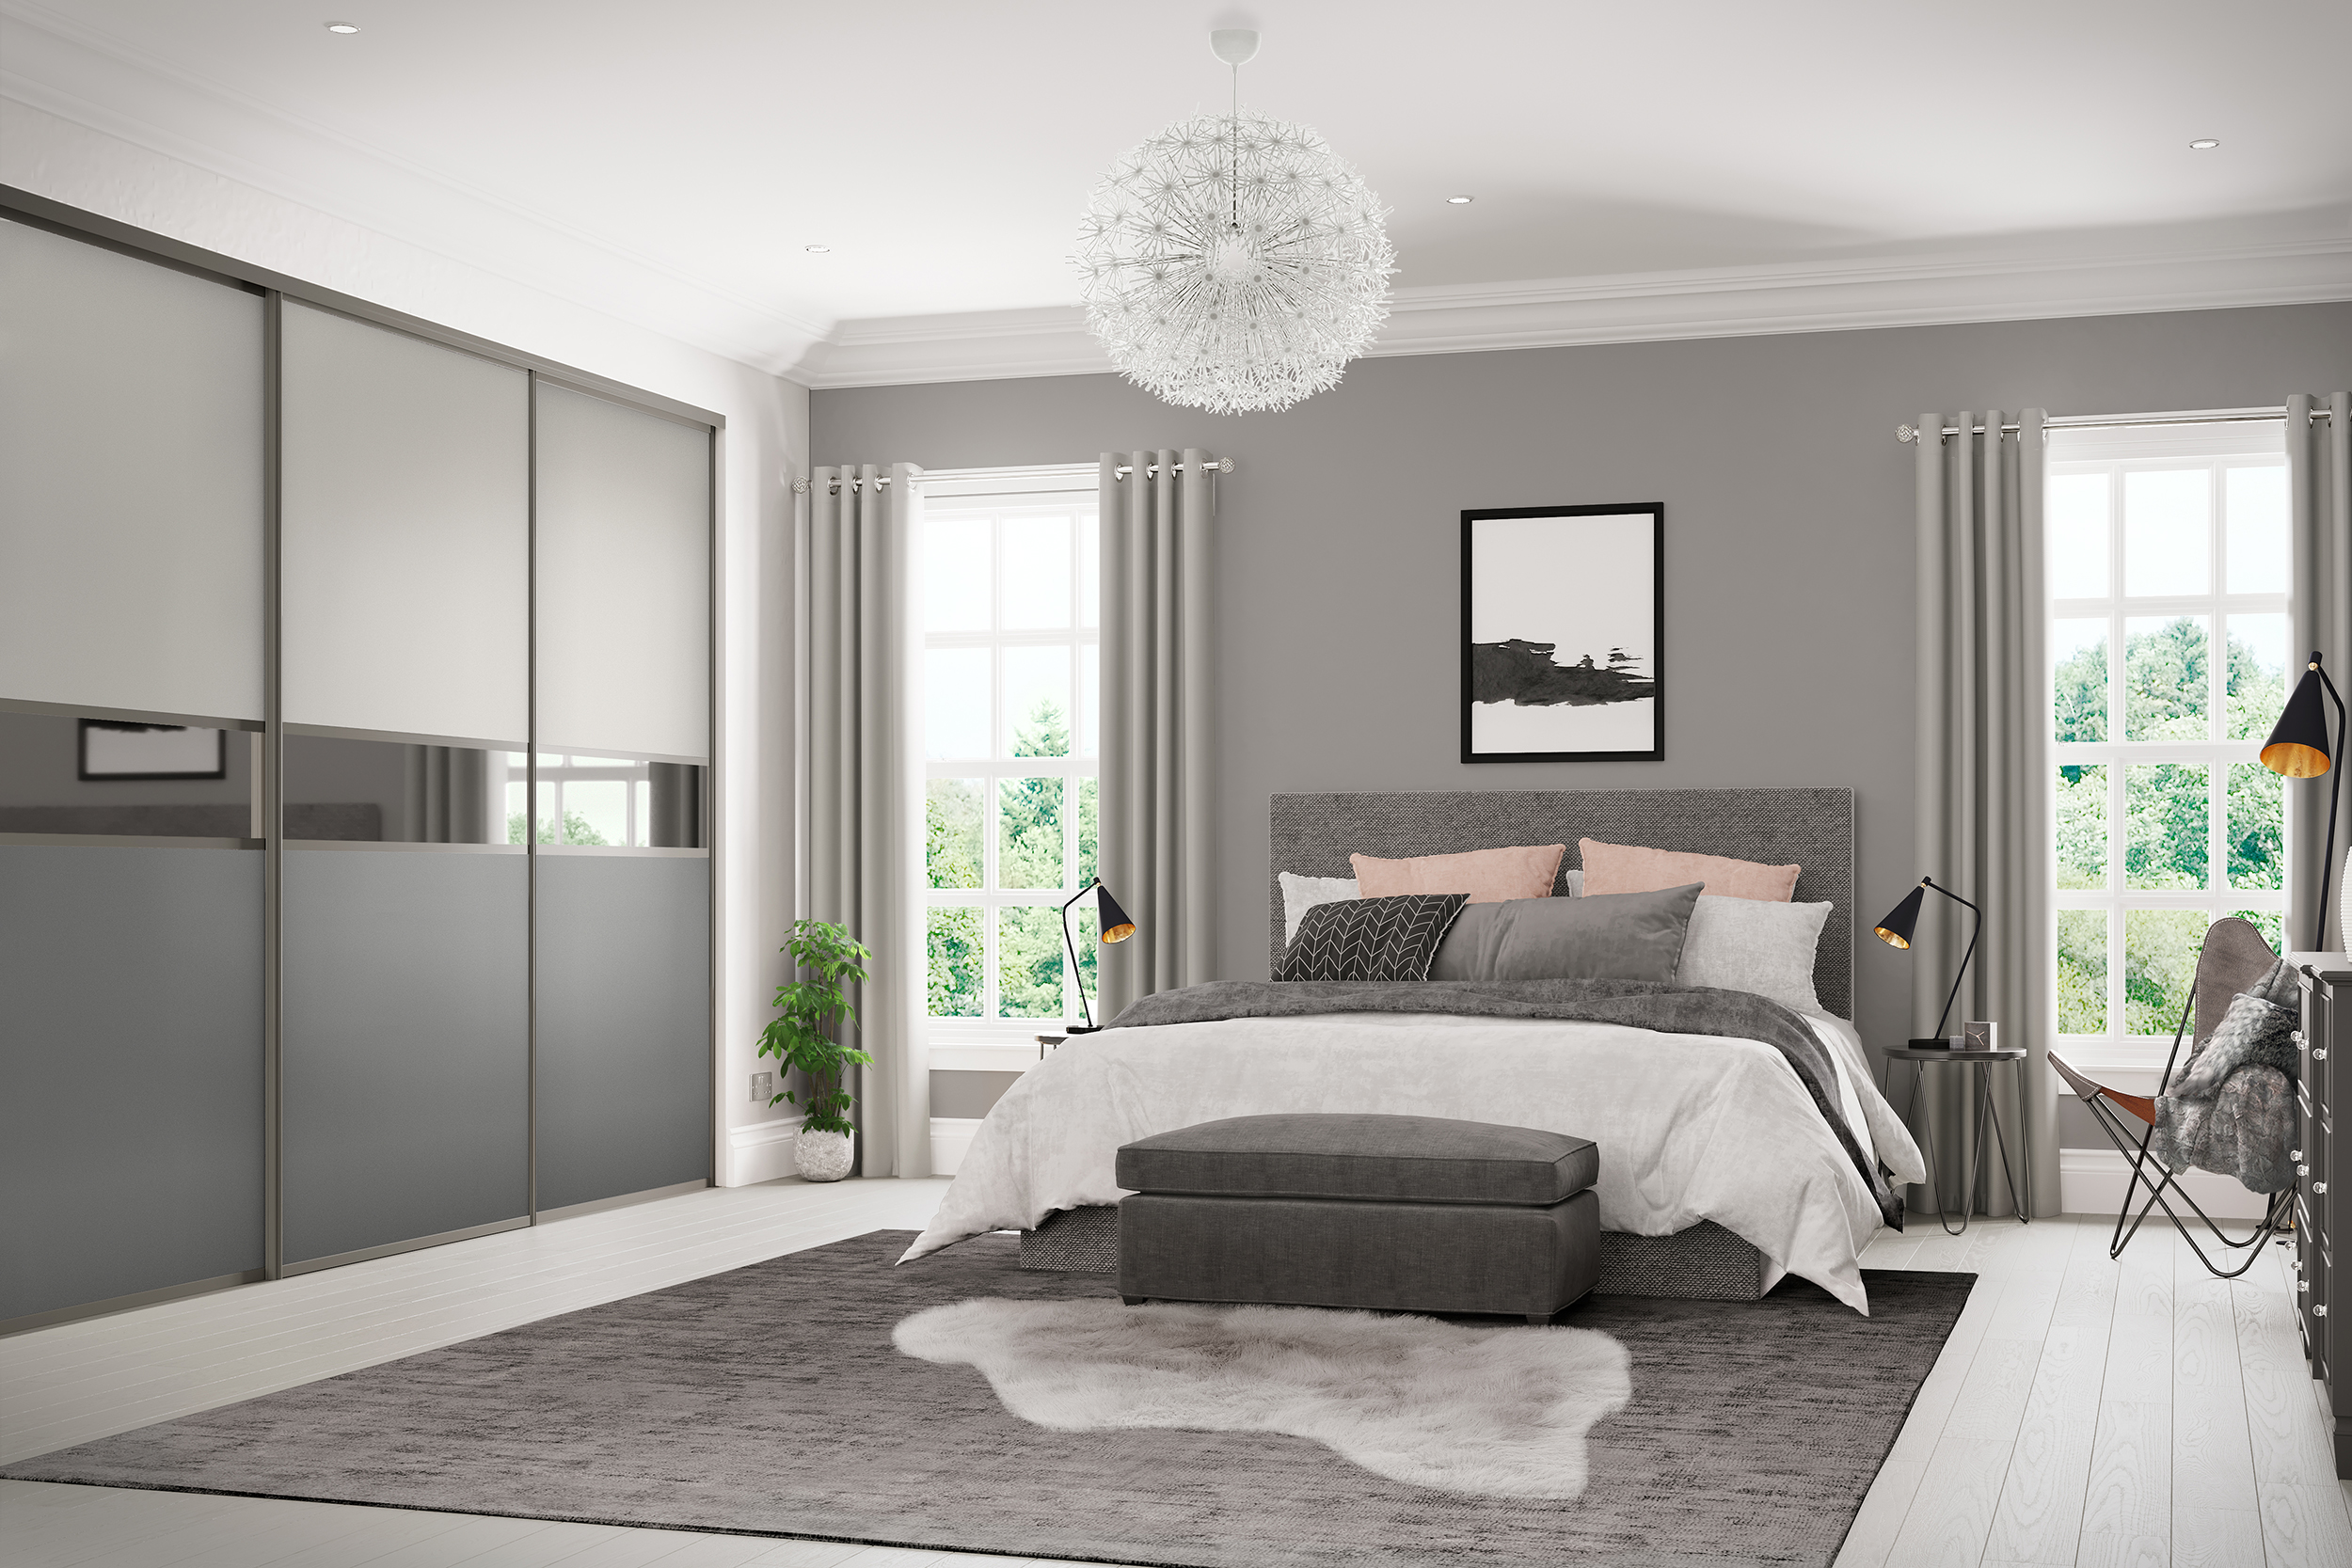 Resized Palermo Grey 101 - Light Grey and Dust Grey doors with Grey Mirror feature panels and Sardegna Graphite frame.jpg